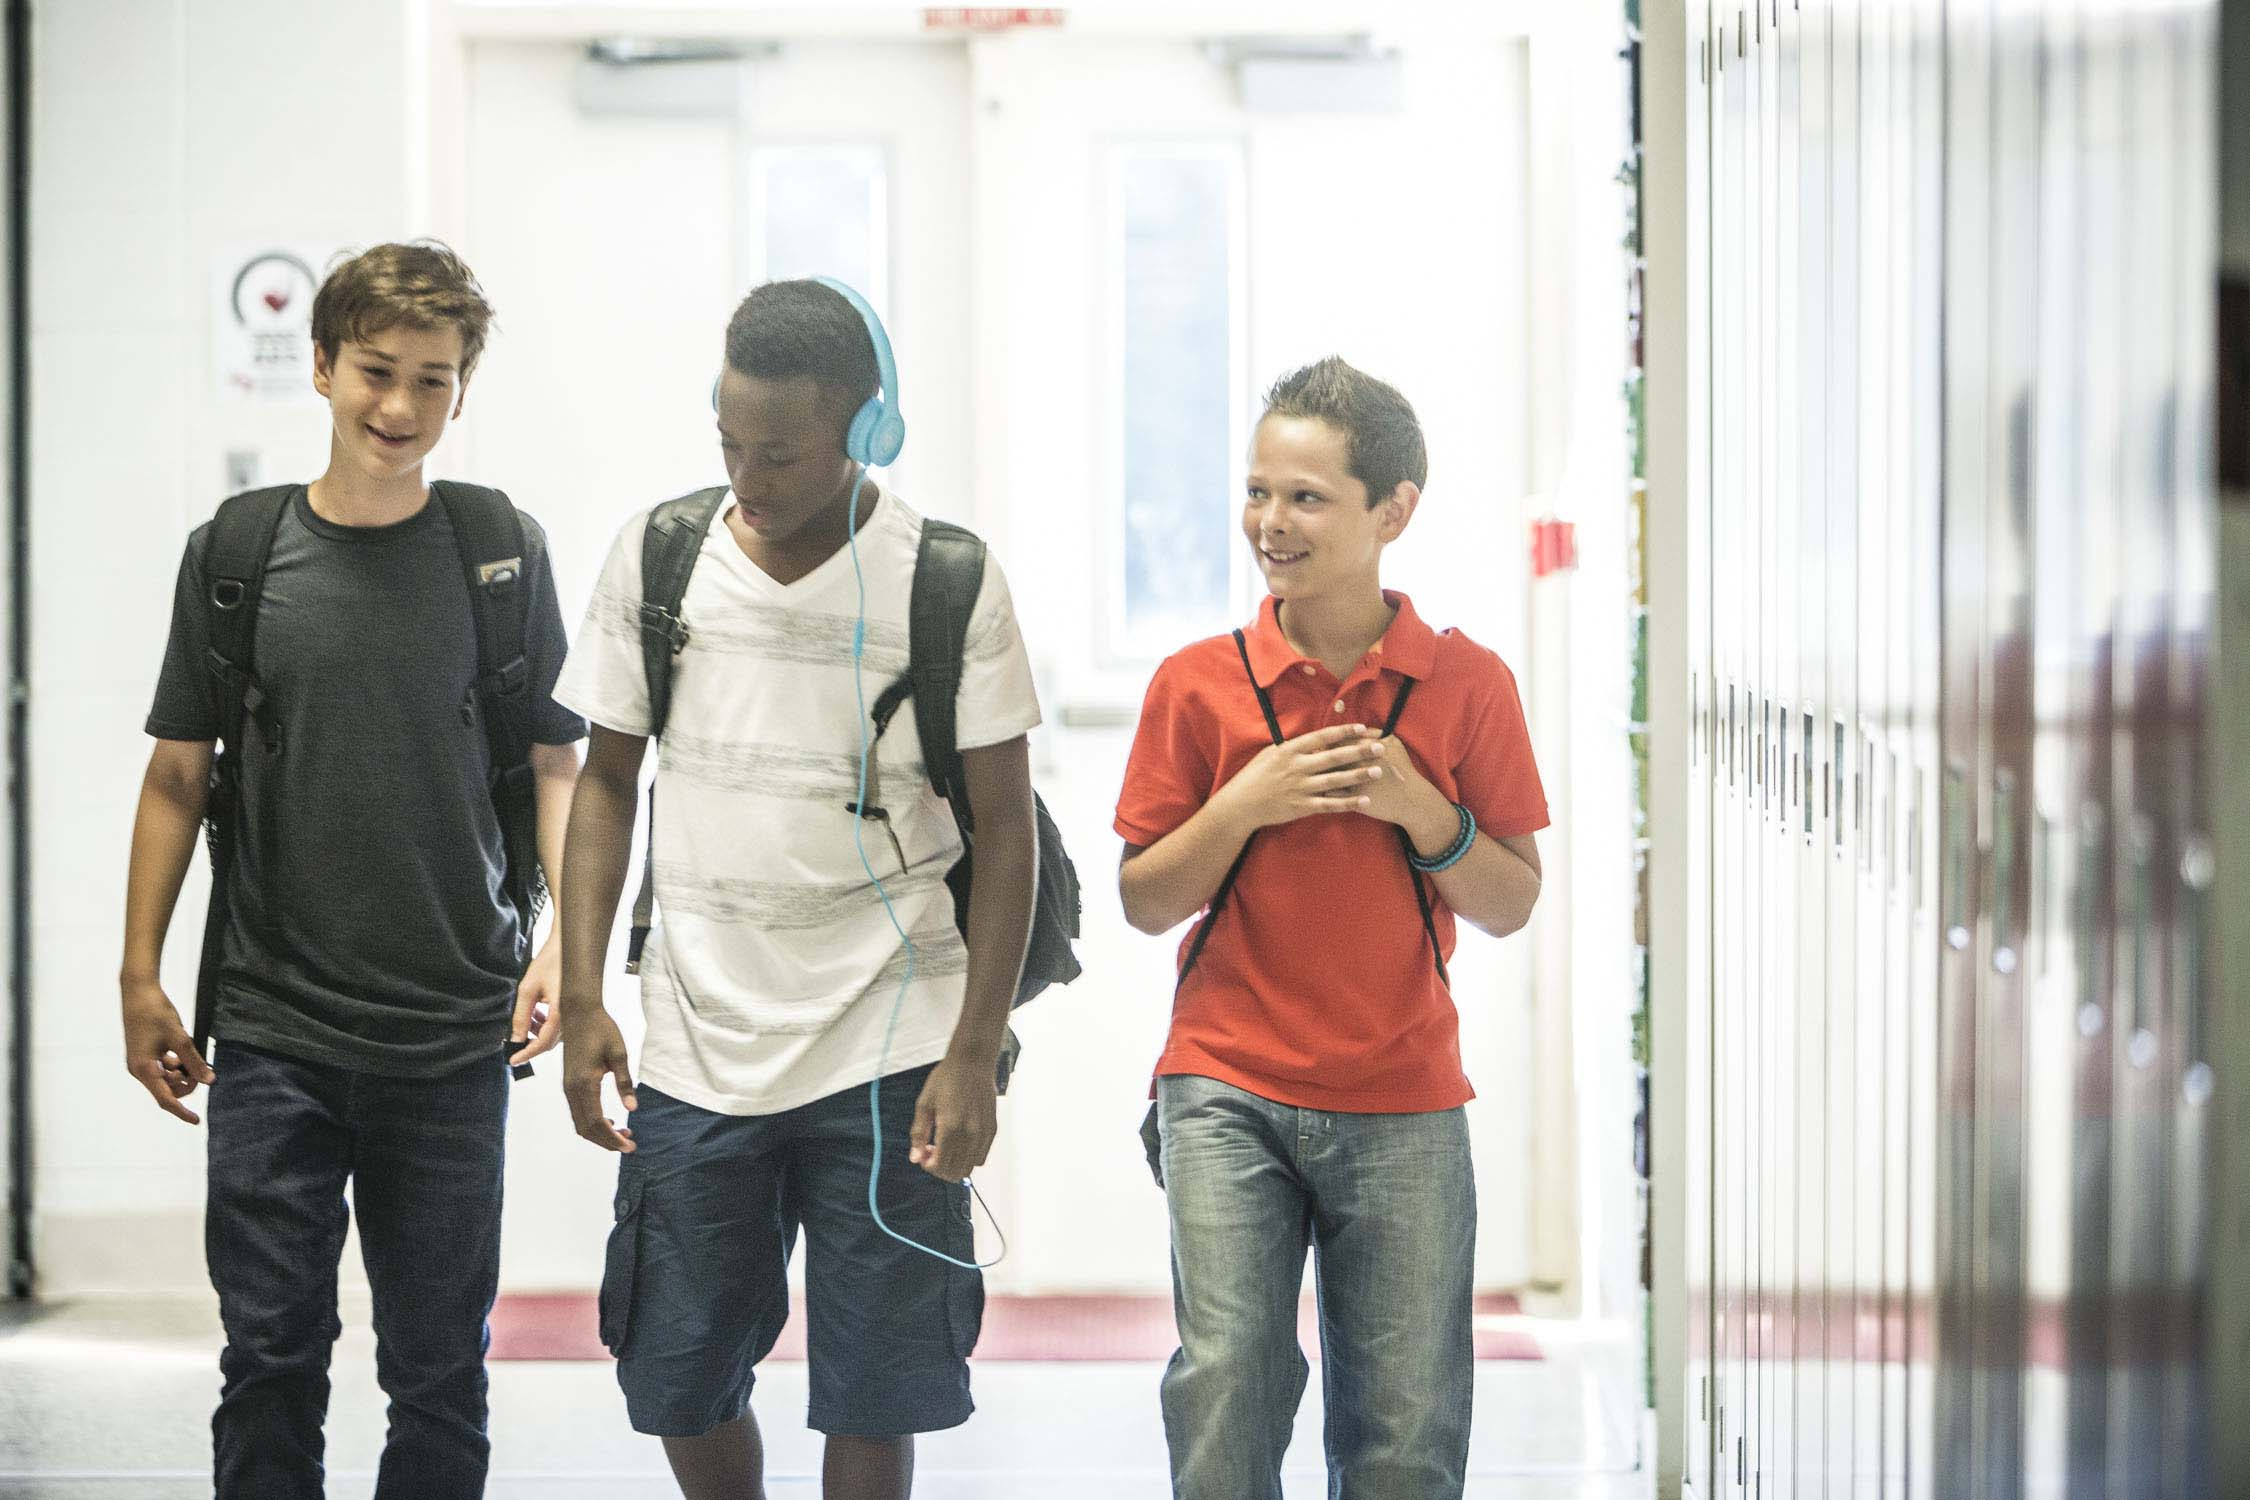 three teen boys walking in school hallway